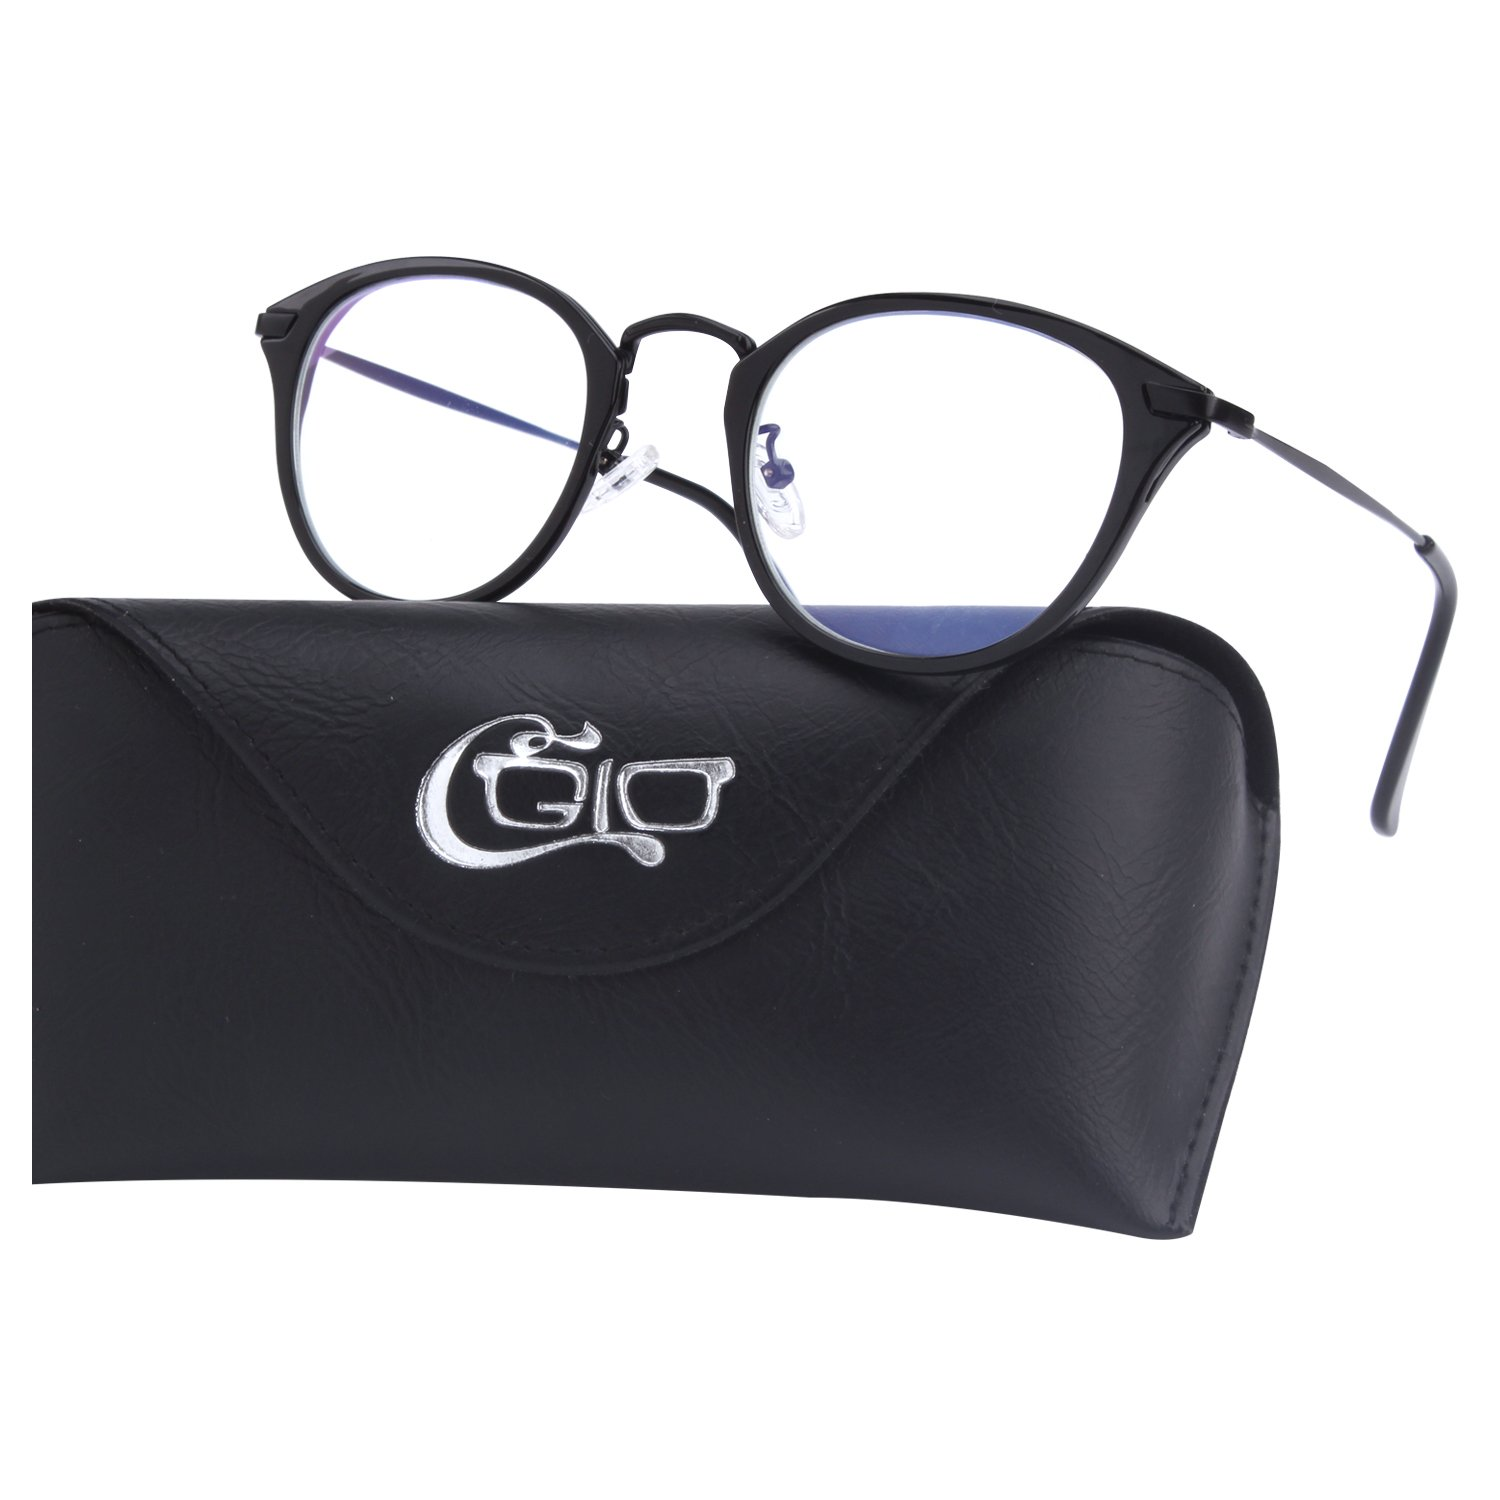 CGID BL903 Blue Light Blocking Glasses Anti Glare Fatigue Safety Computer Glasses with Premium TR90 Metal Frame Transparent Lens